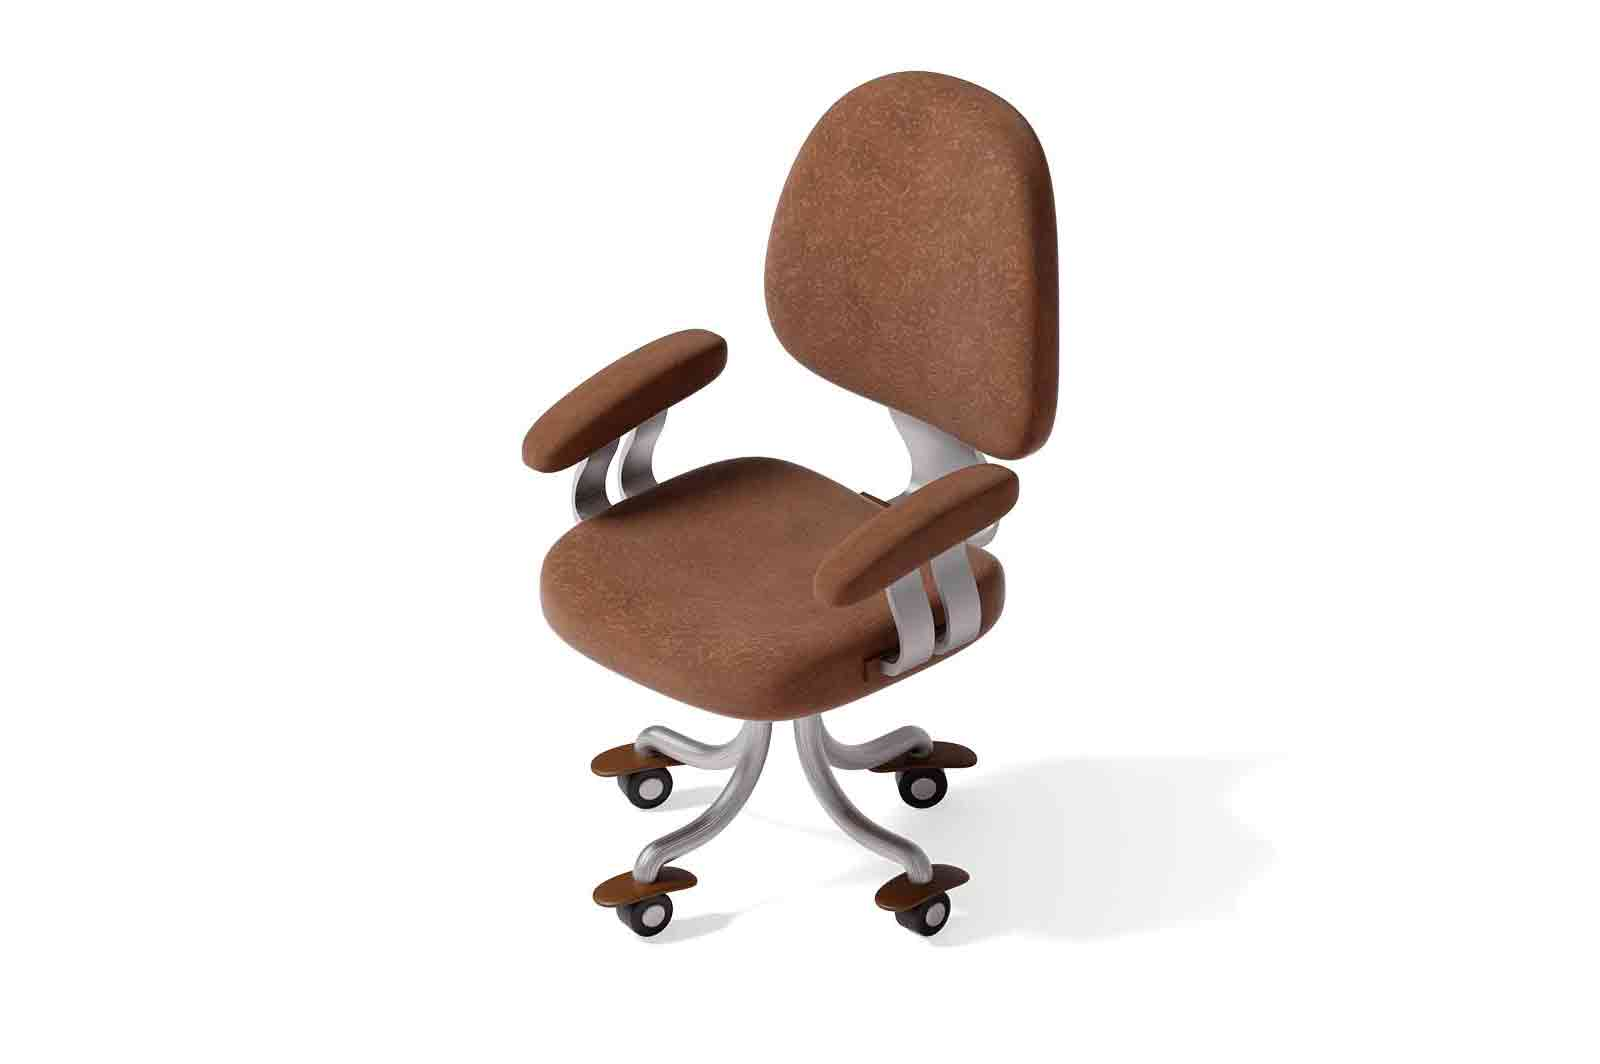 Modern brown office chair 3d rendered illustration. Isometric armchair model with metal base on wheels. Office furniture concept